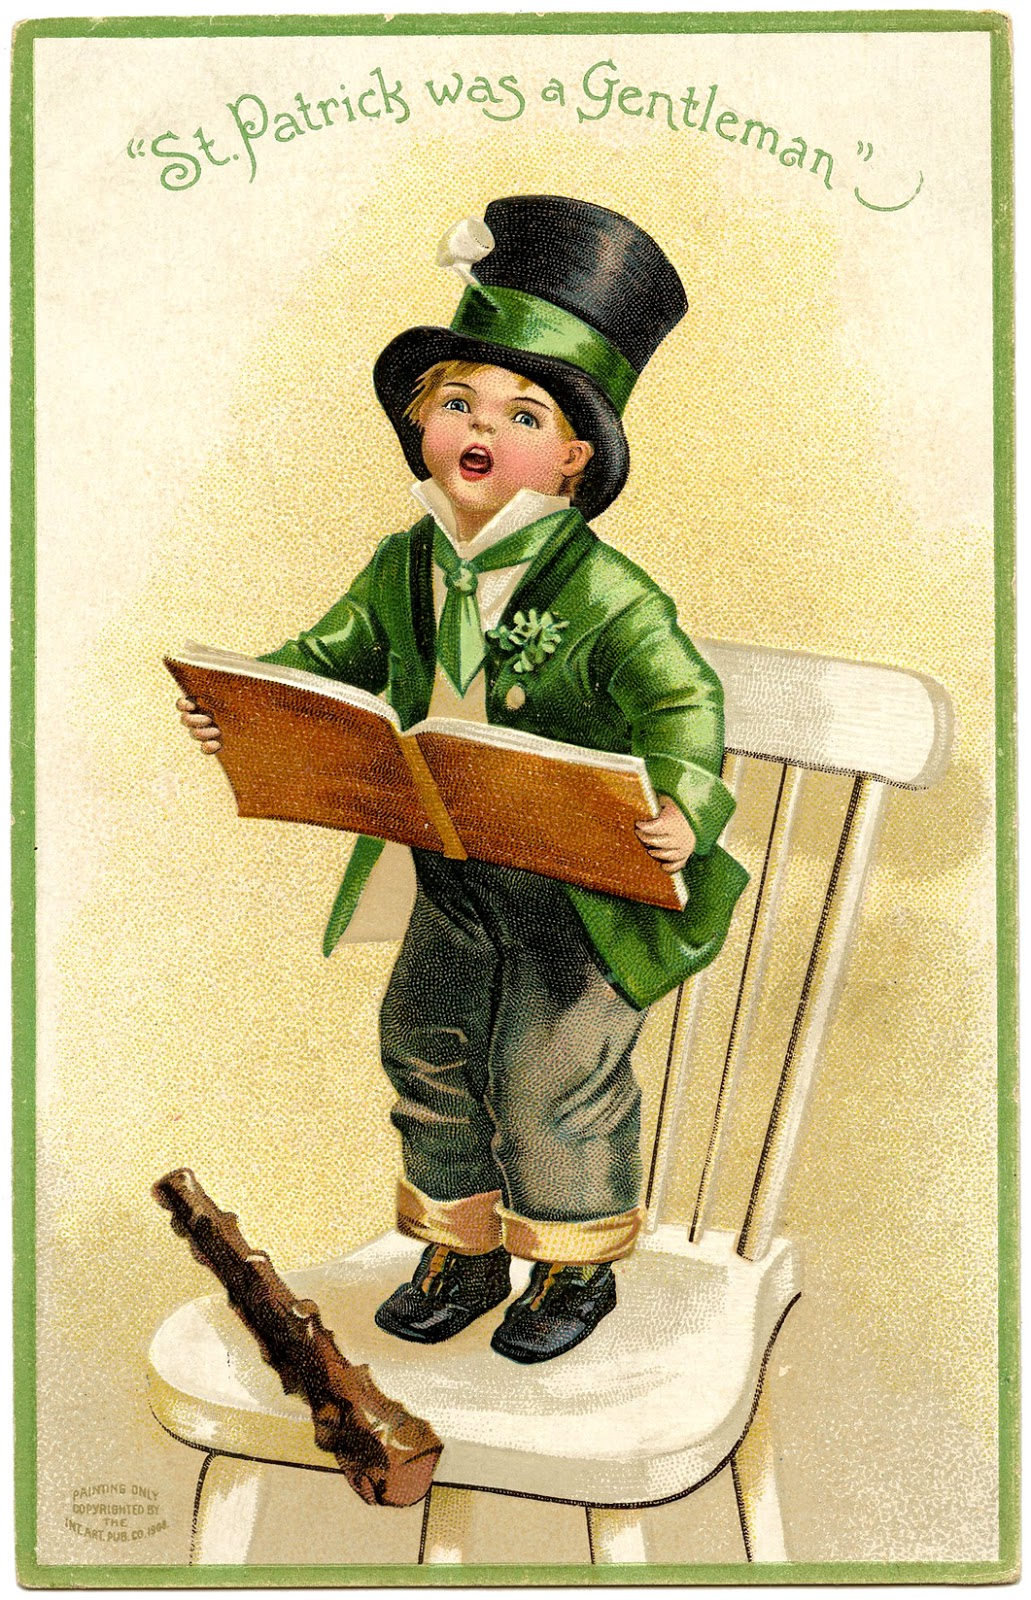 Vintage St Patricks Day Image Boy Irish Green